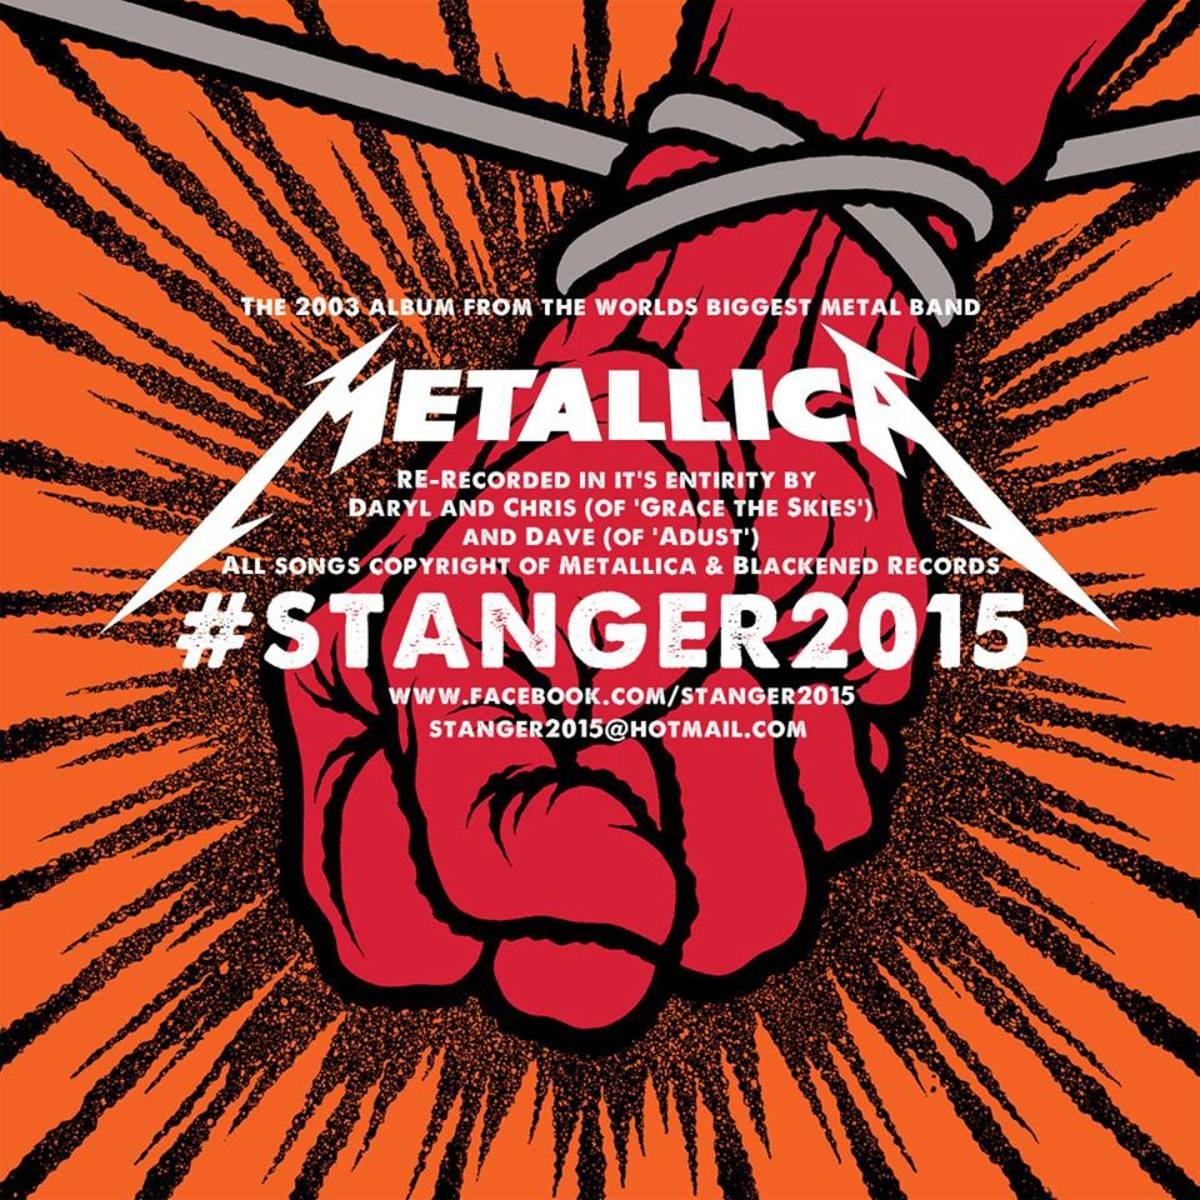 """St. Anger 2015"" - Diehard Metallica Fans Re-record Their Most Misunderstood Album"